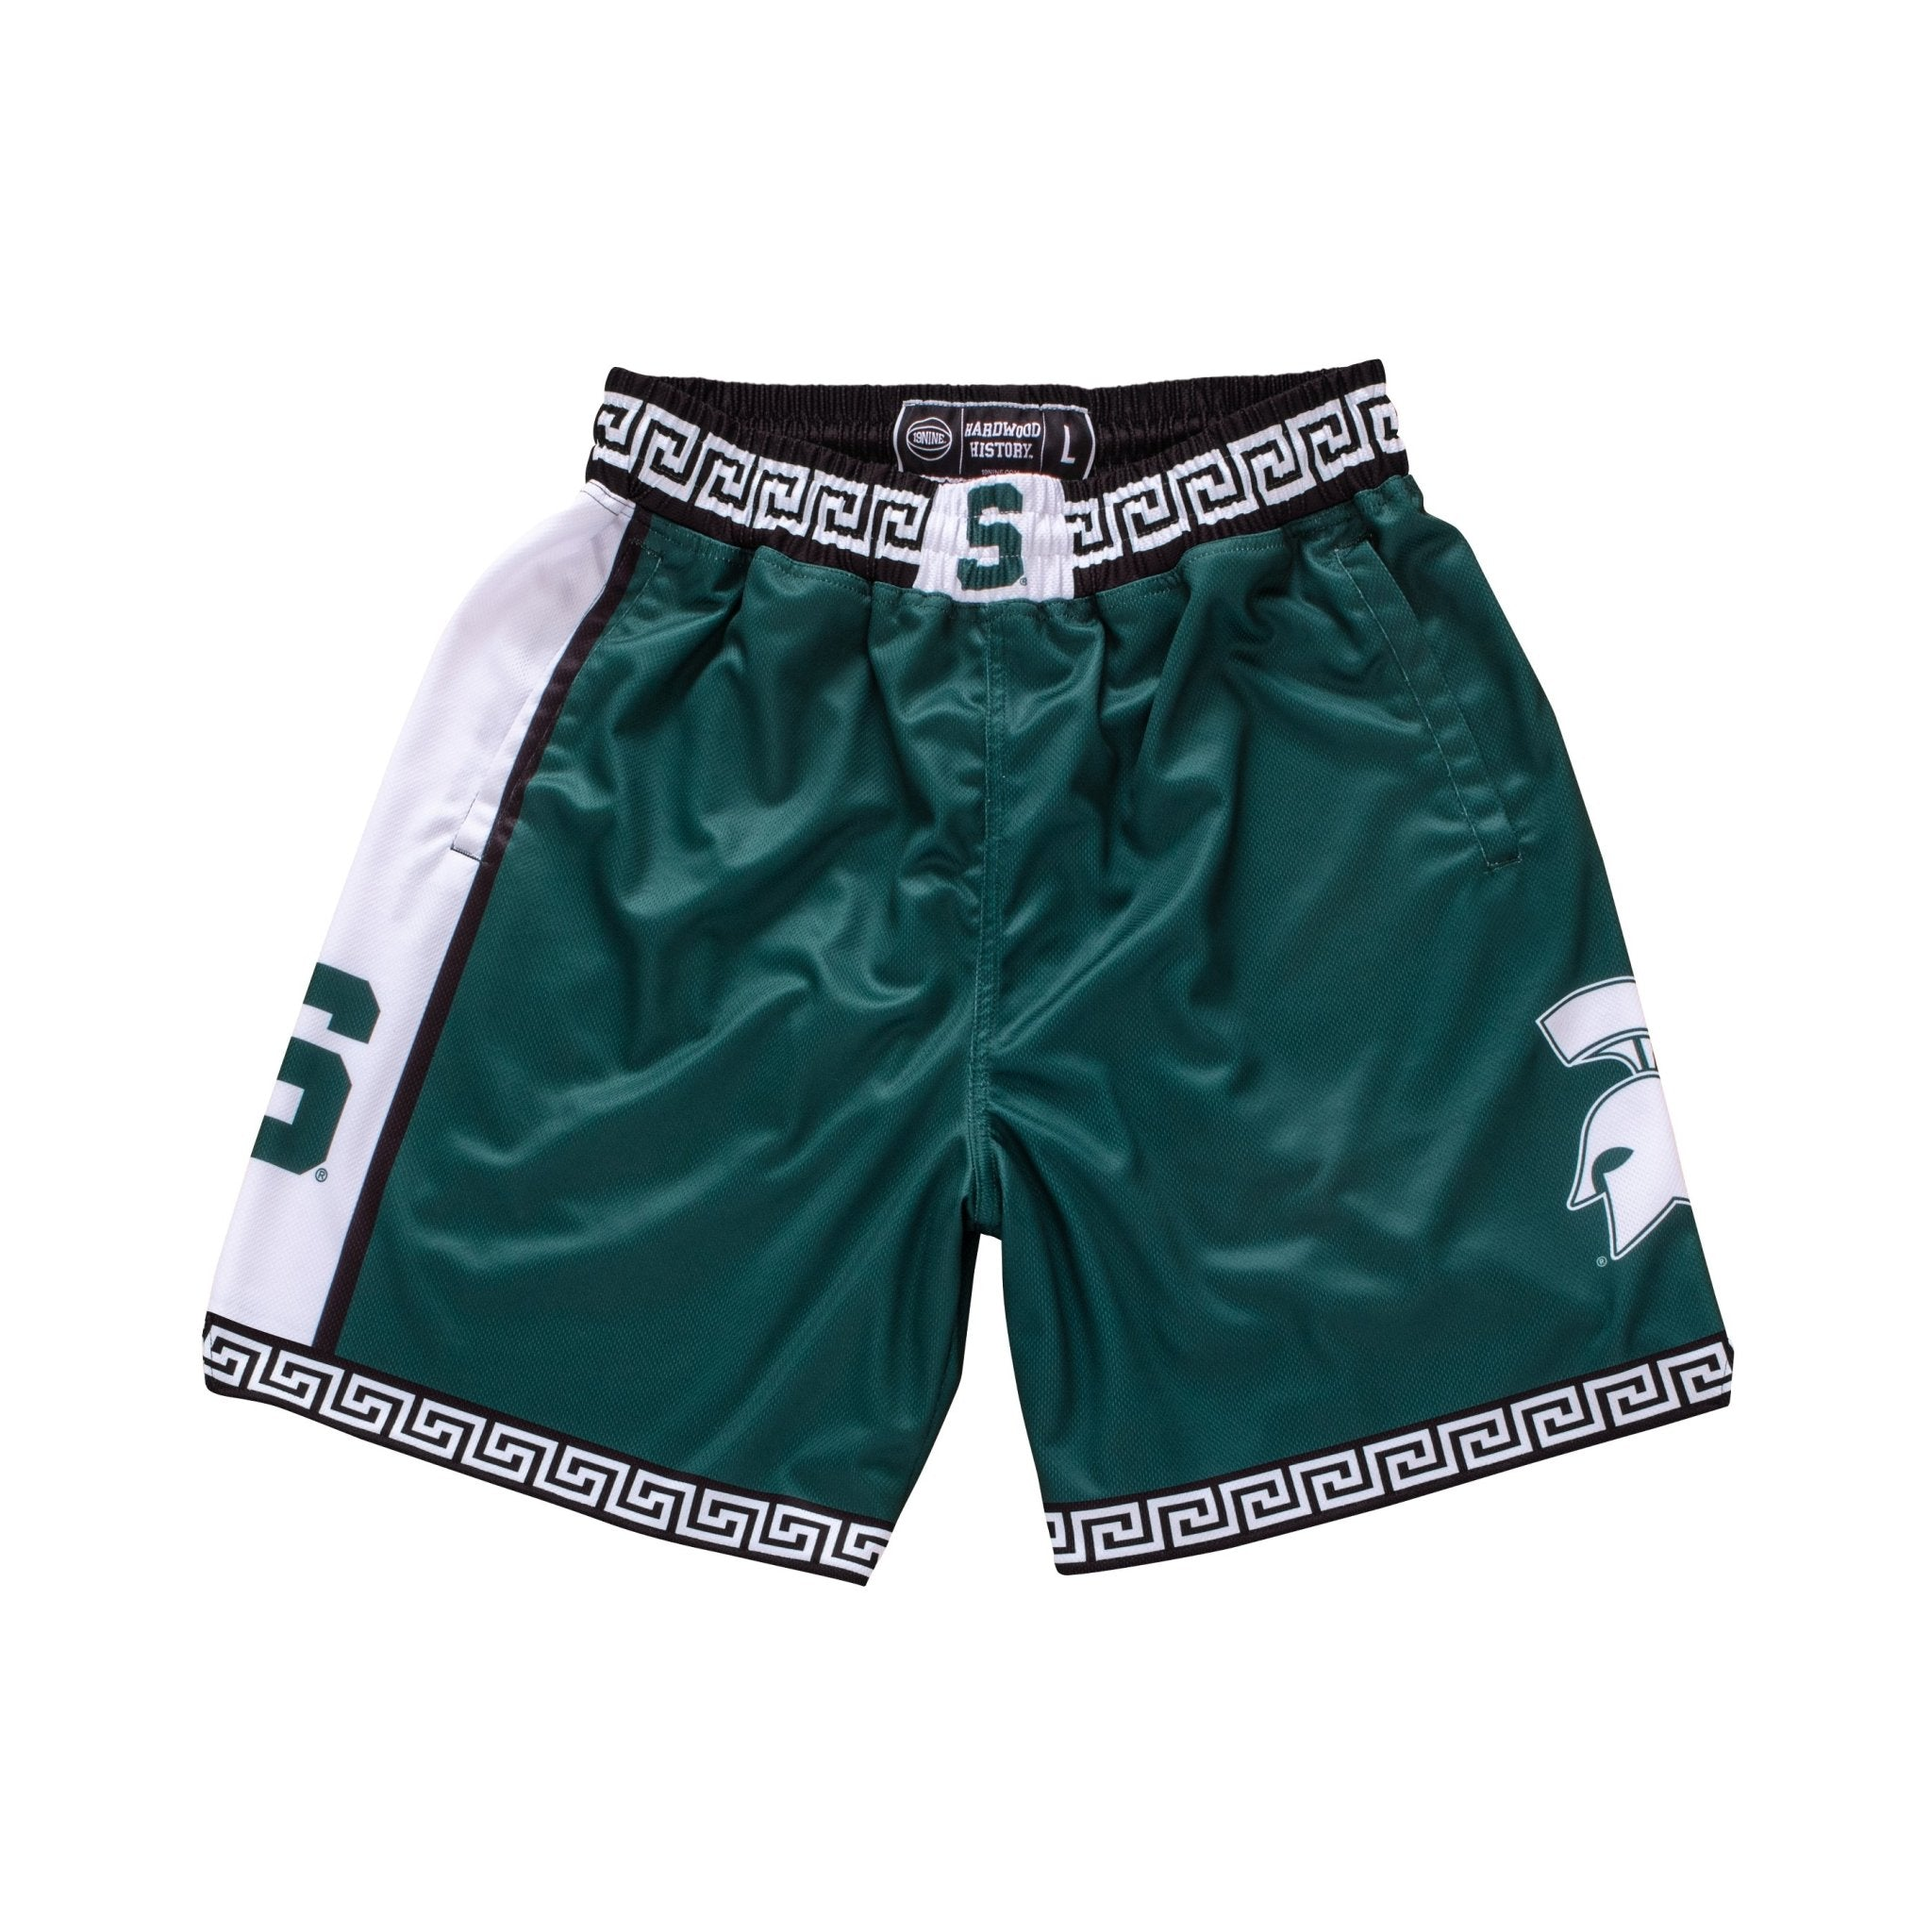 Michigan State Spartans 1999-2000 Retro Shorts - SLAM